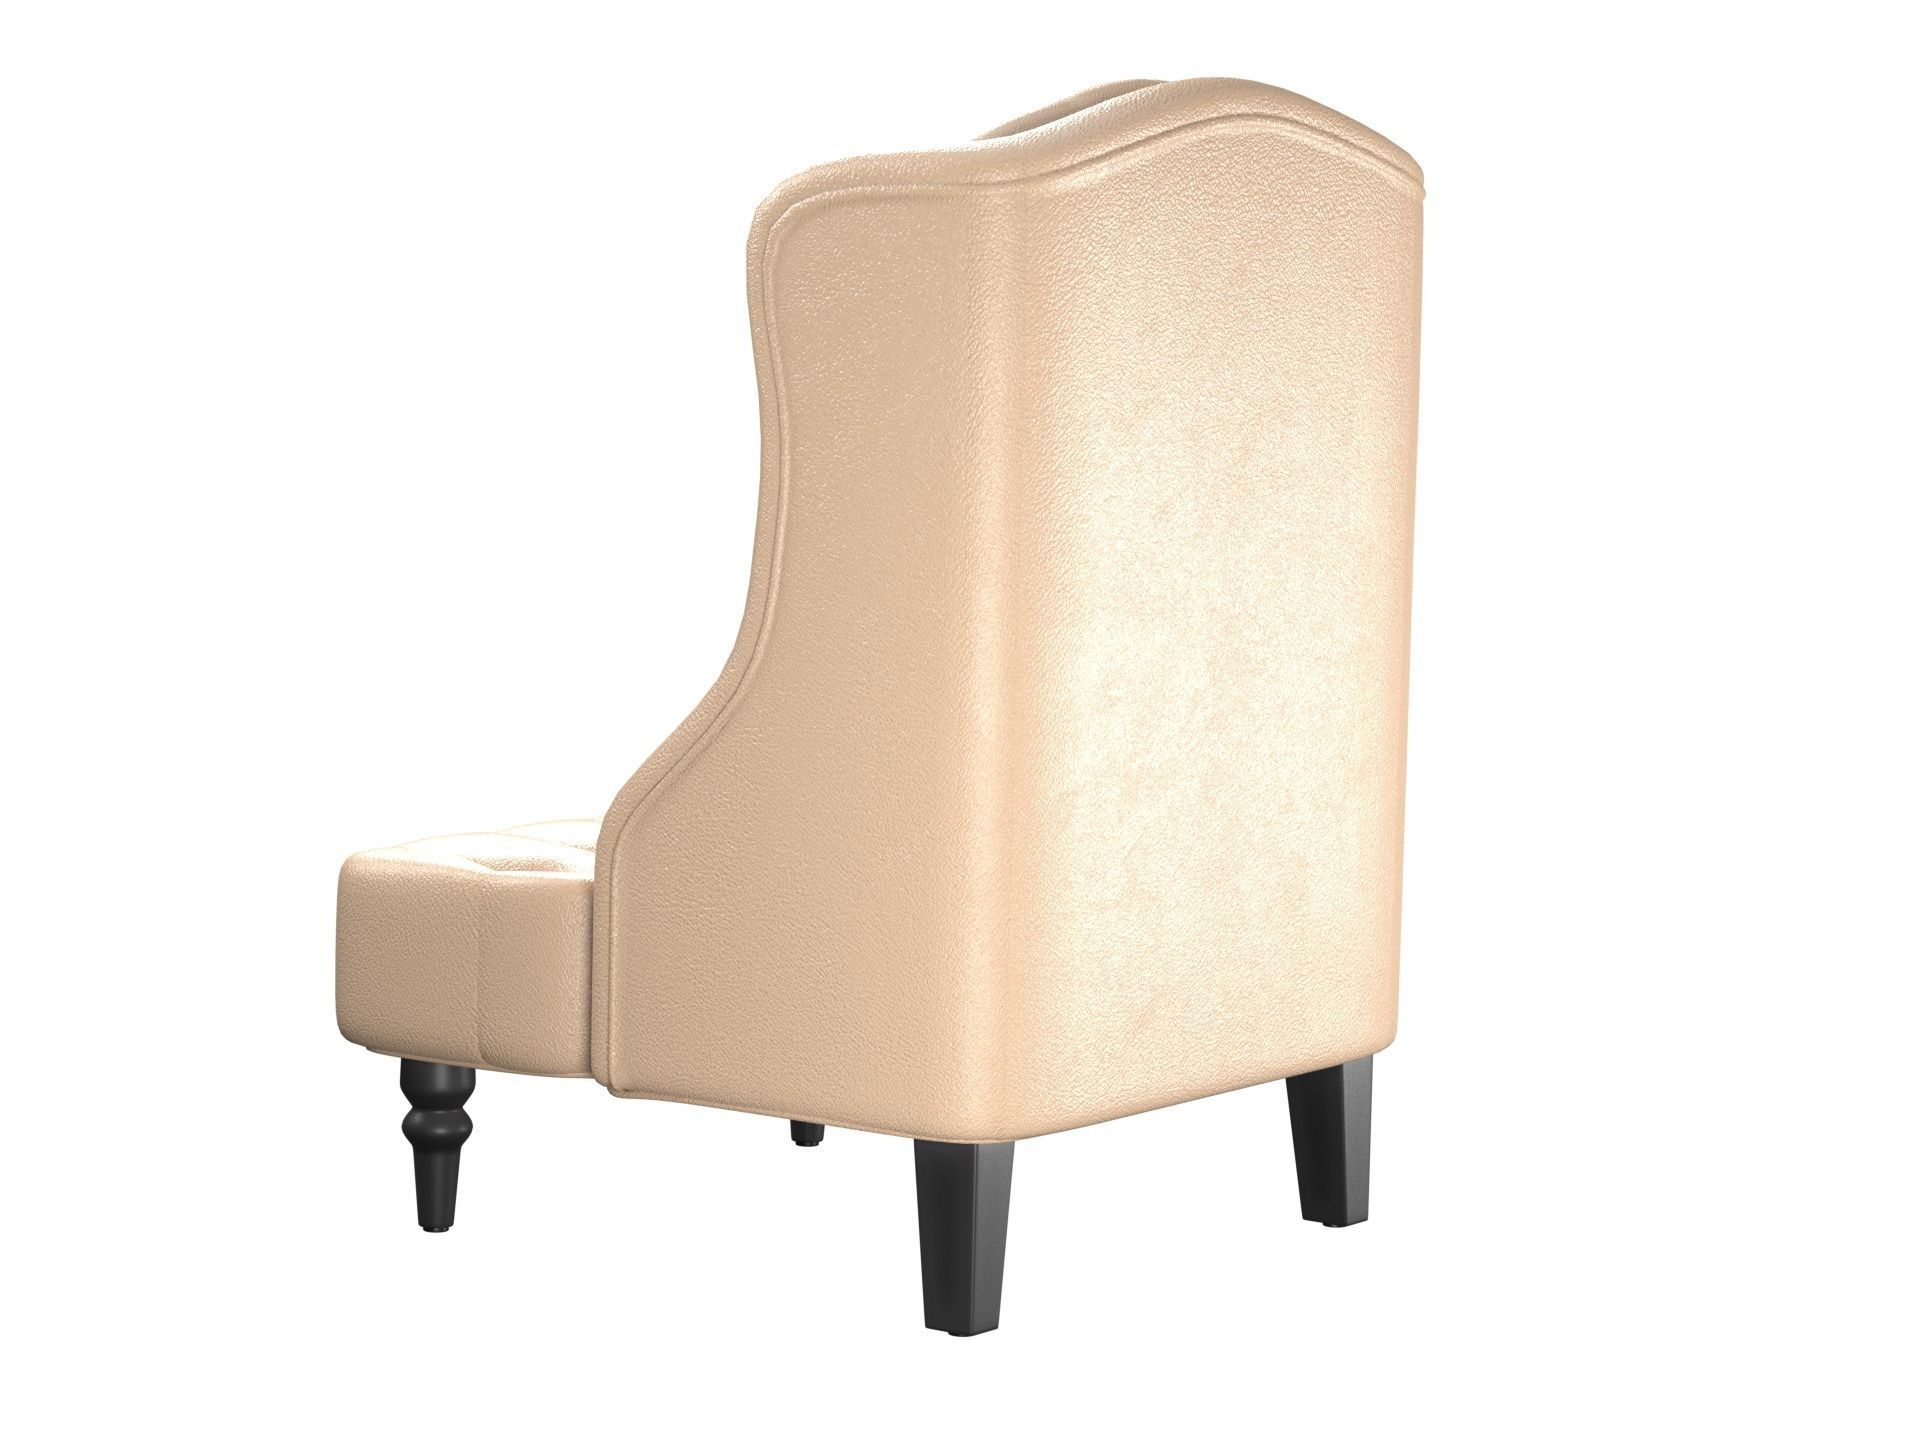 Wingback Tufted Chair Tall Wingback Tufted Leather Accent Chair With Nail Head Beige 3d Model